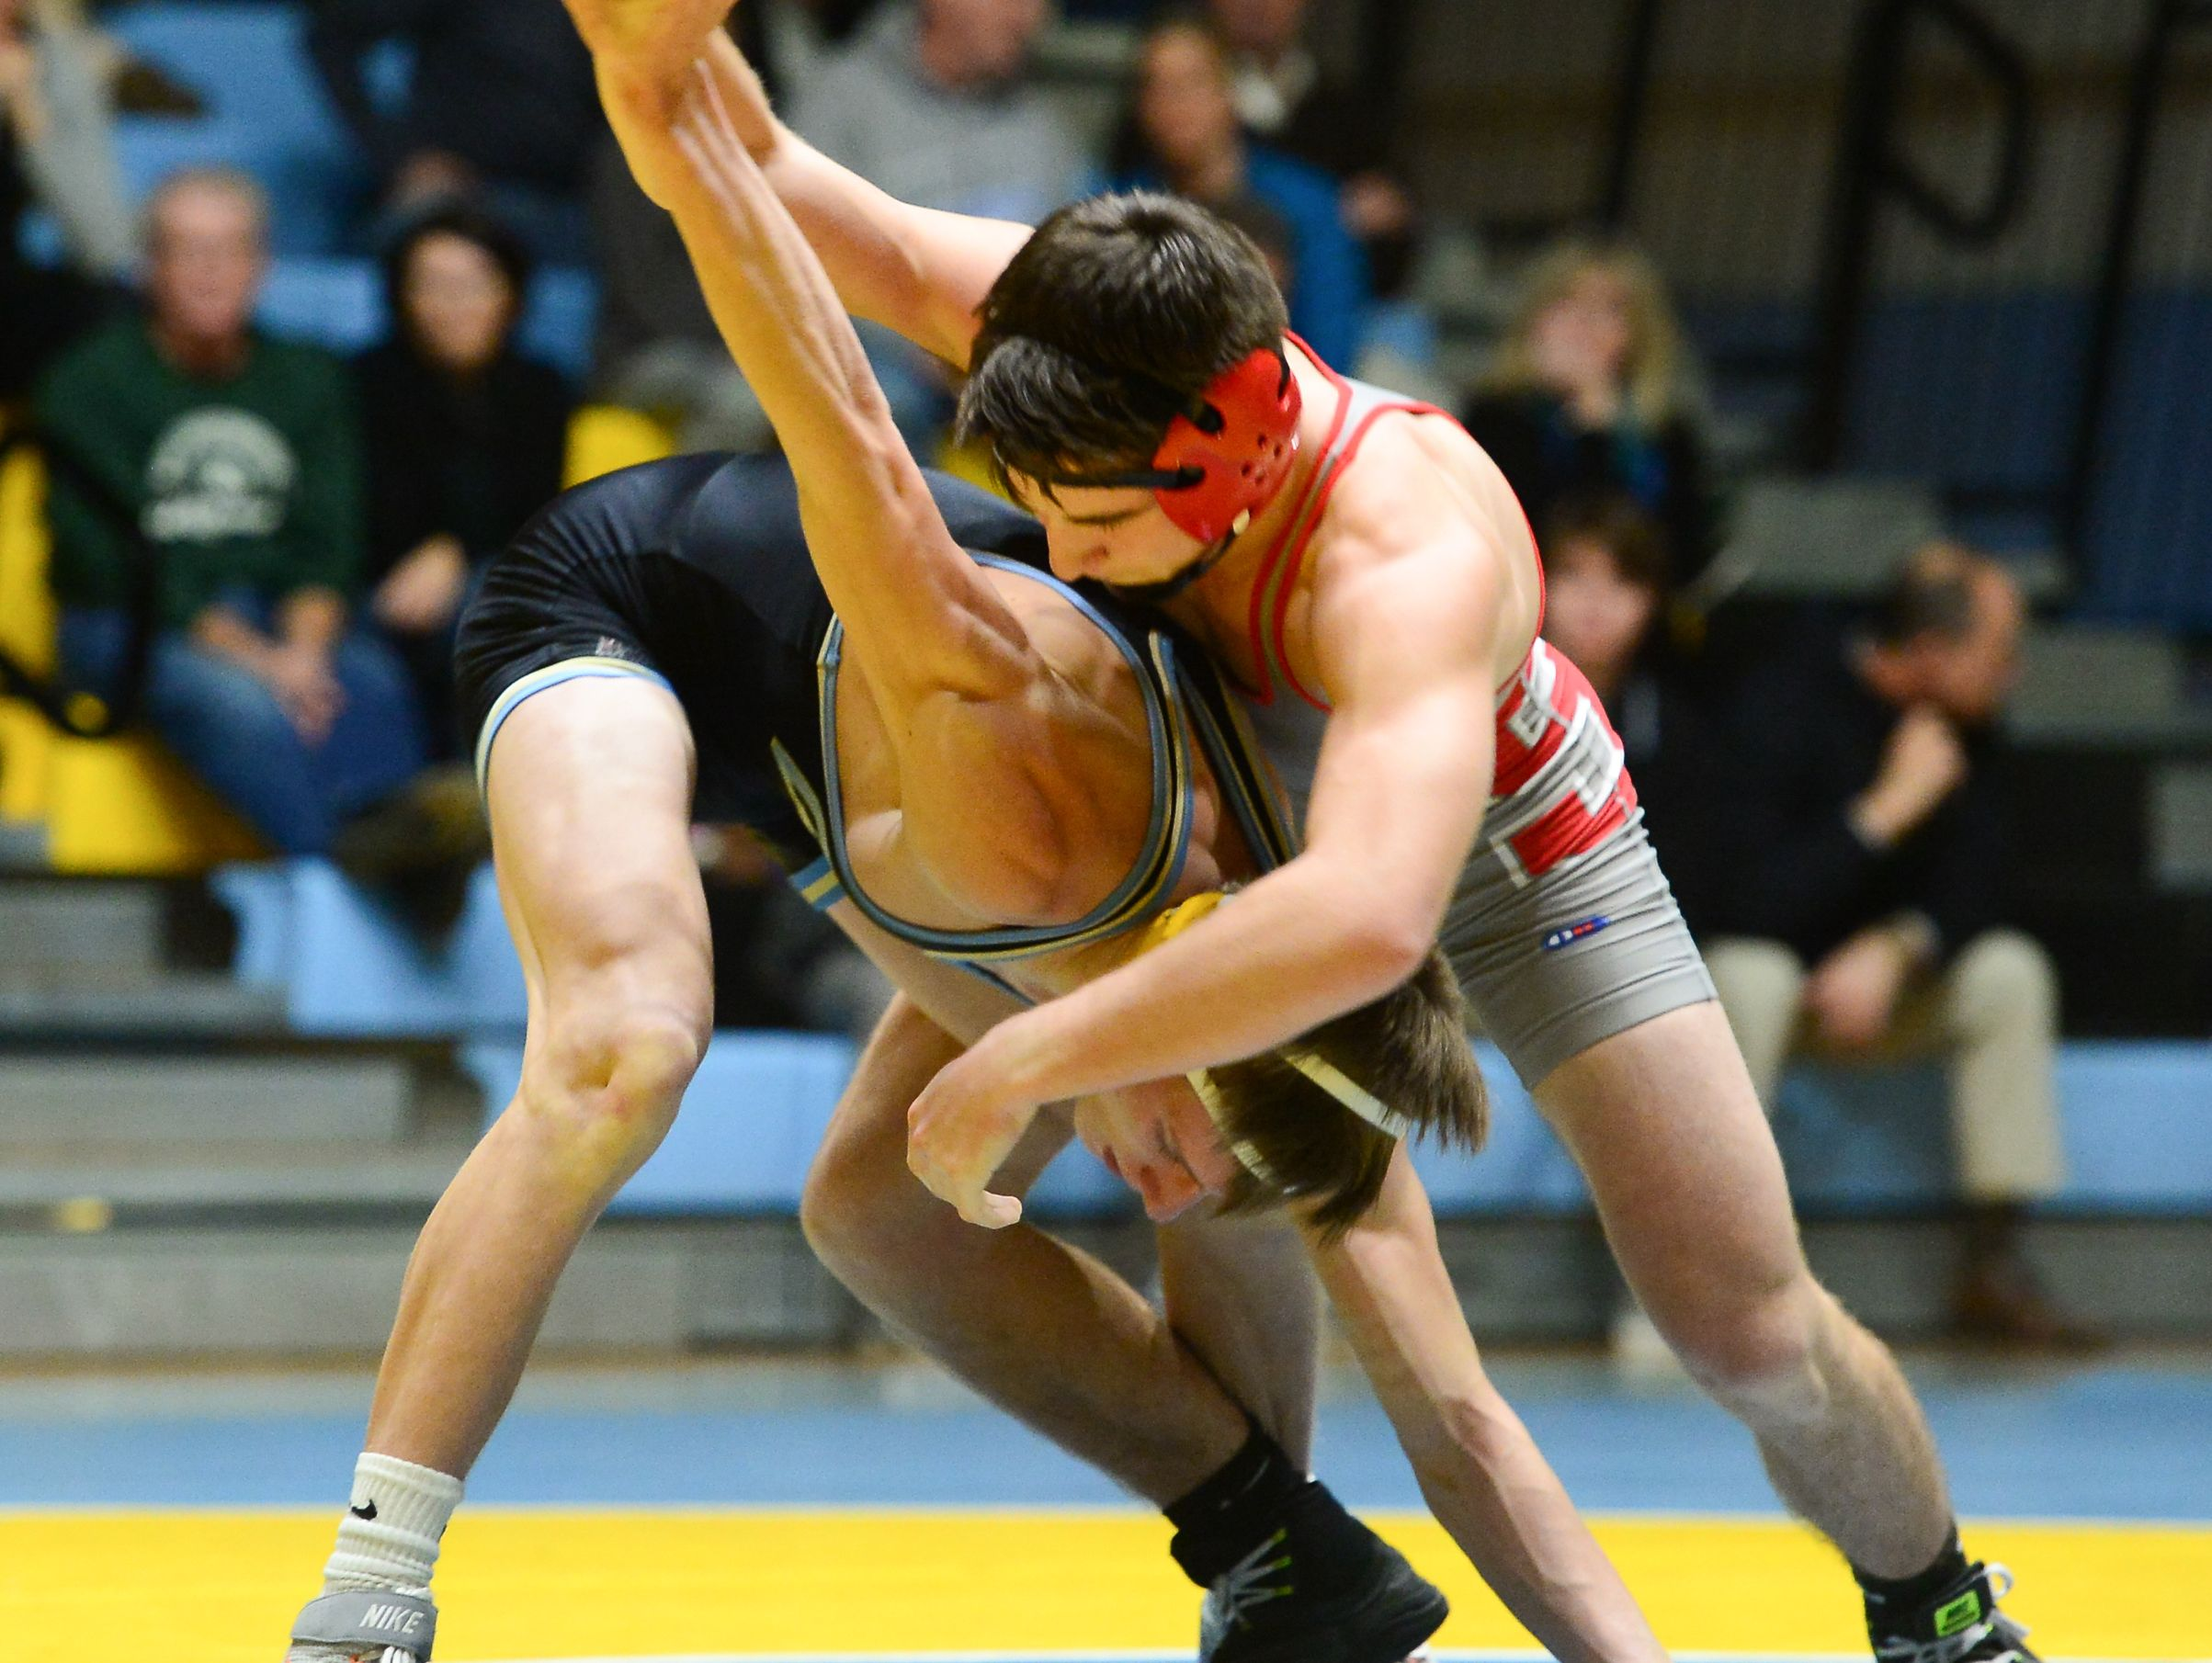 Cape's Max Norquest matches up against Smyrna's Greg Baum during the 132lb match up at Cape Henlopen High School on Wednesday, Jan. 18, 2017.